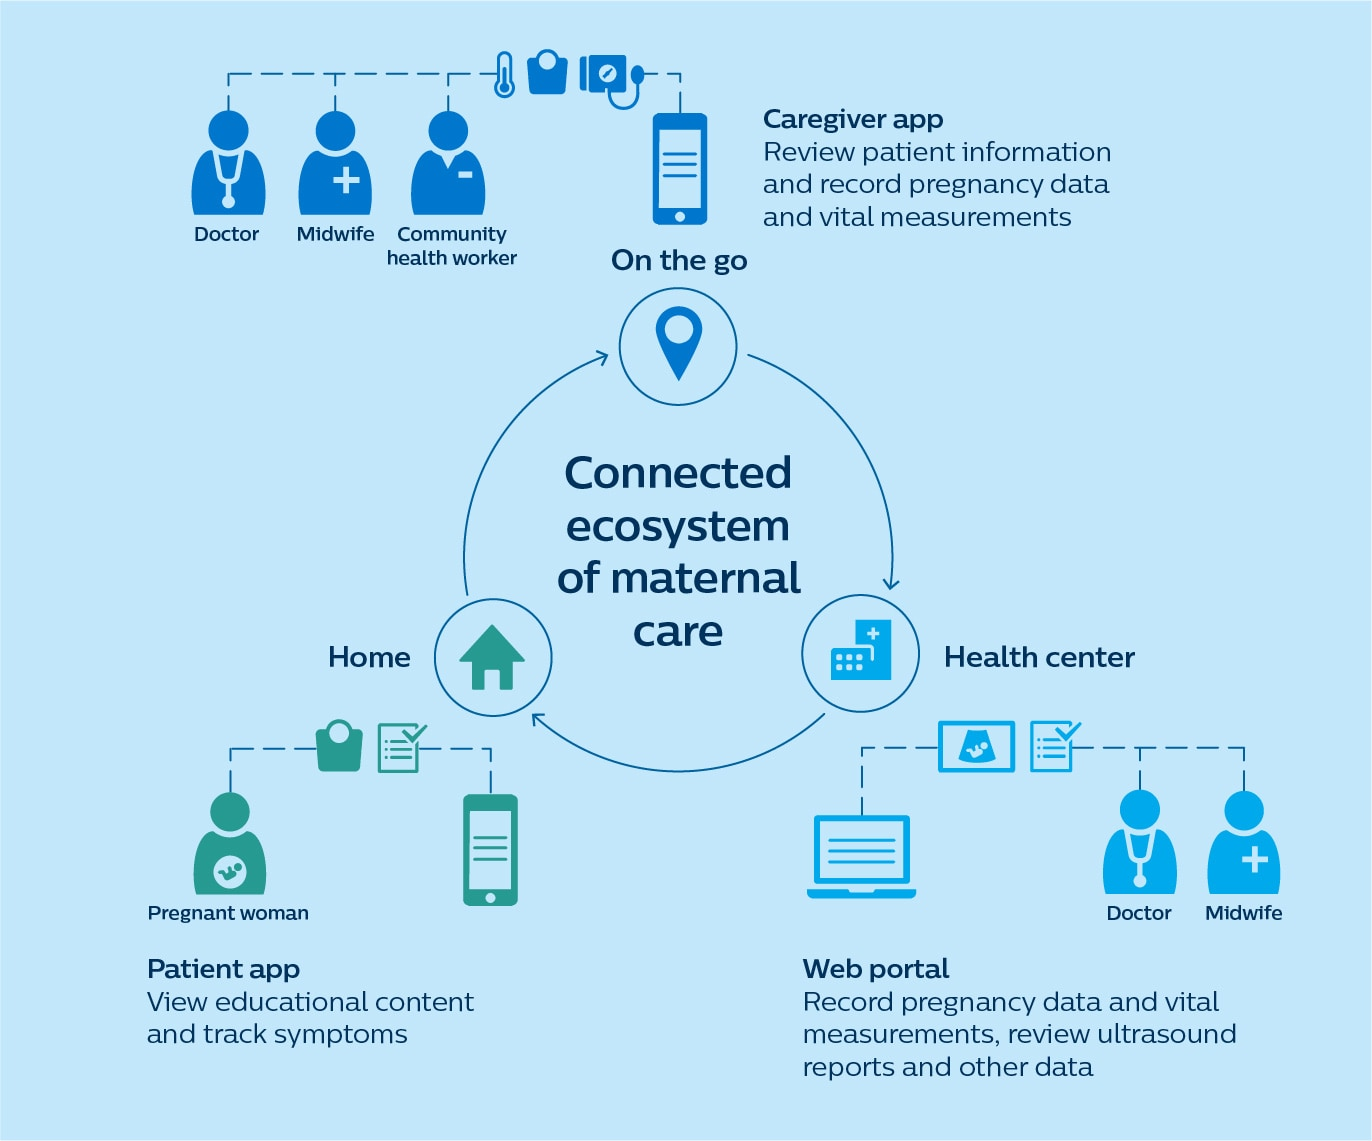 connected ecosystem maternal care